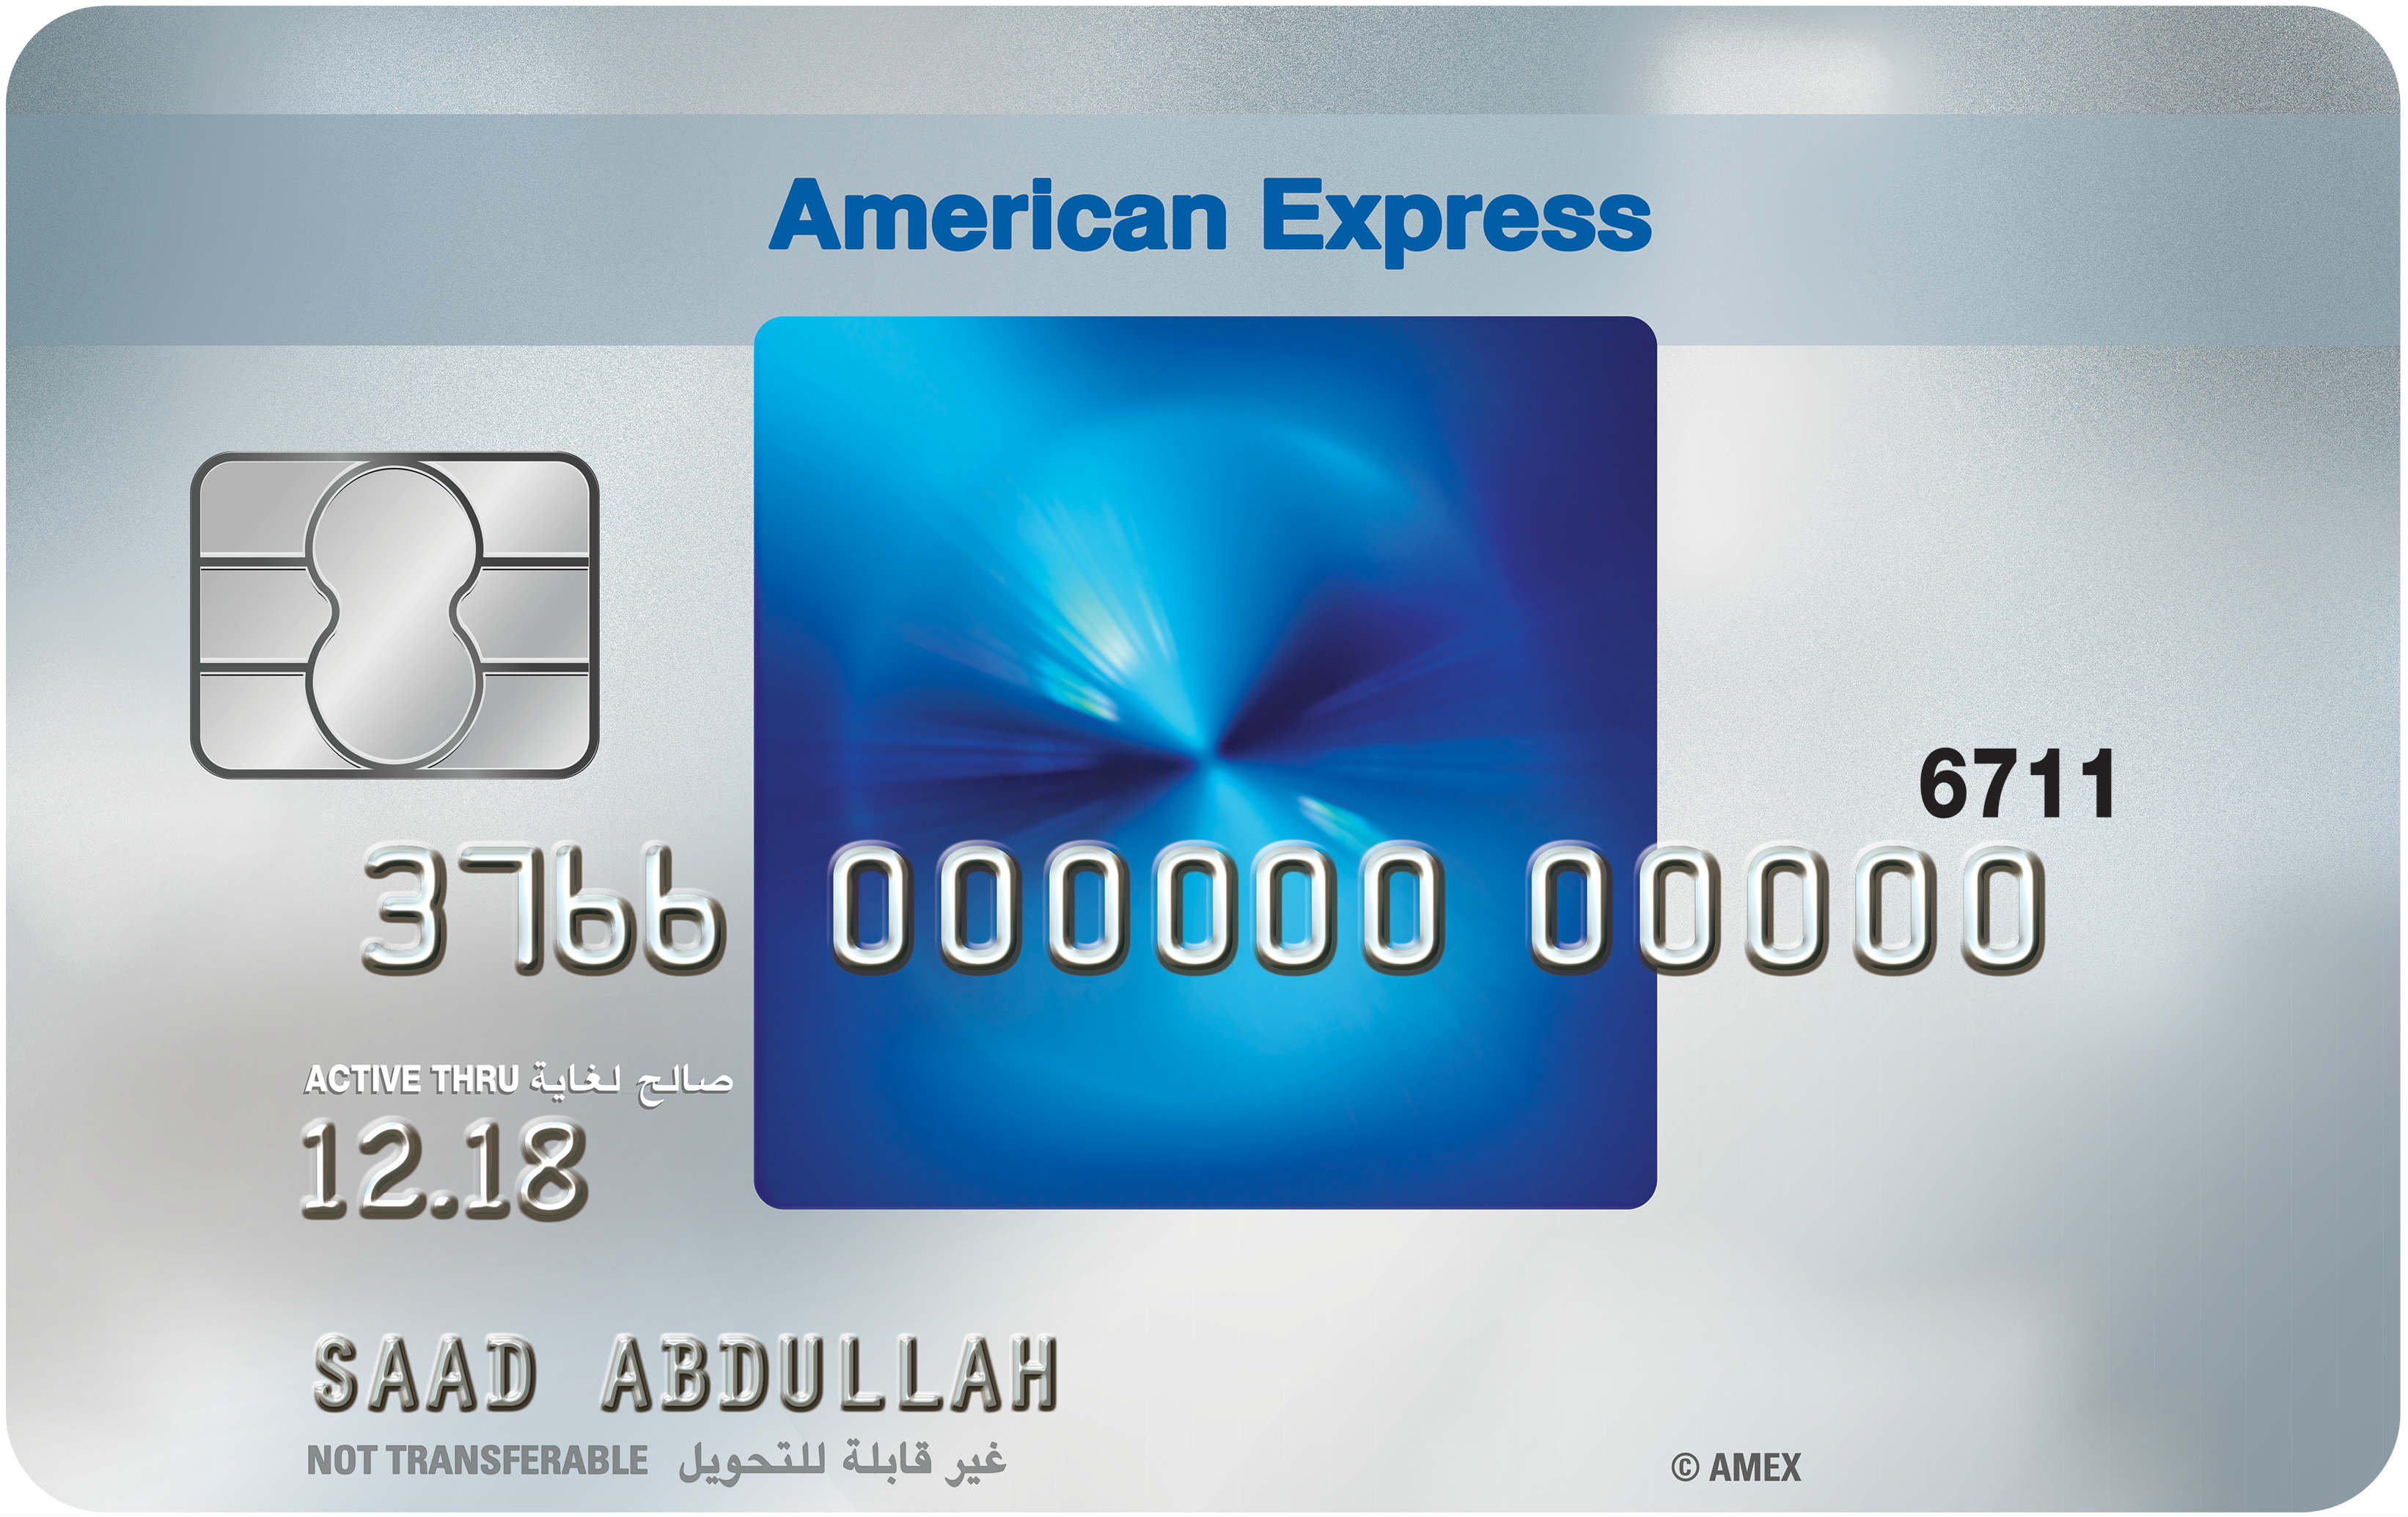 The American Express - Blue Card